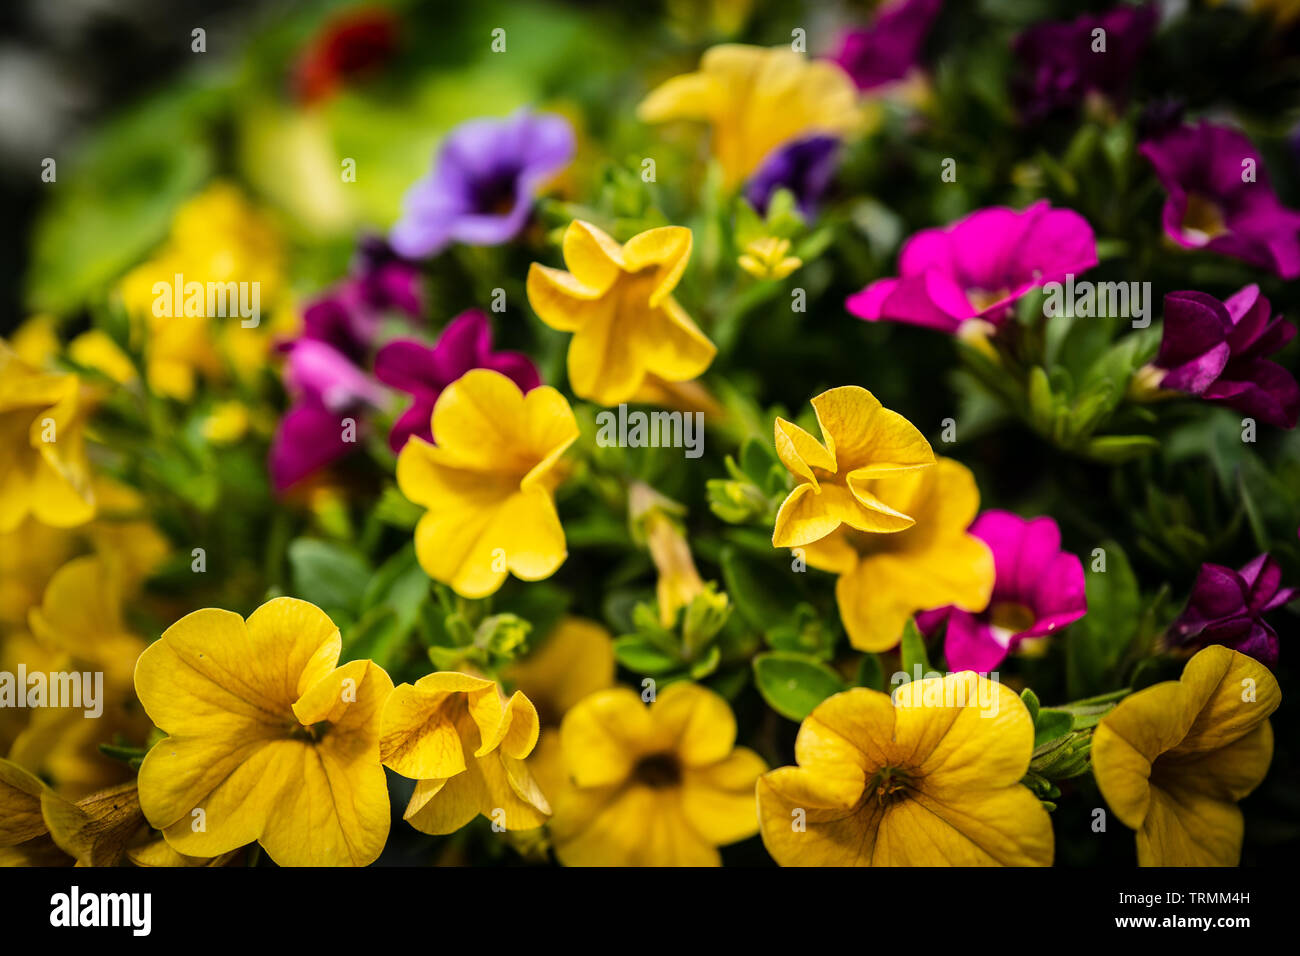 Eye-catching flowers, Warm Summer colours - Stock Image